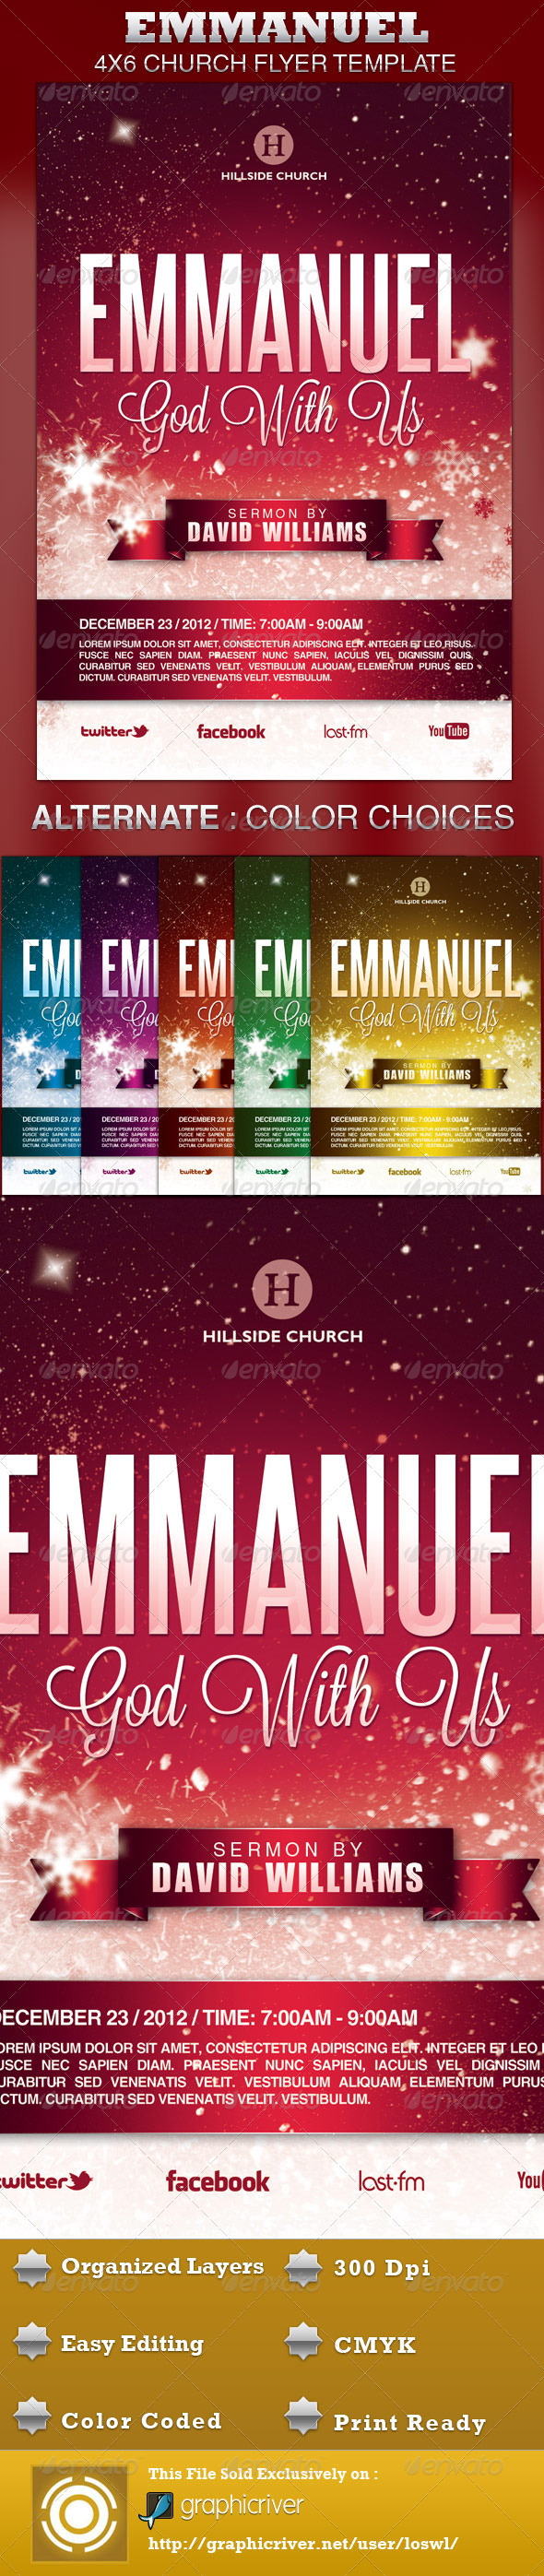 Emmanuel Church Flyer Template - Church Flyers